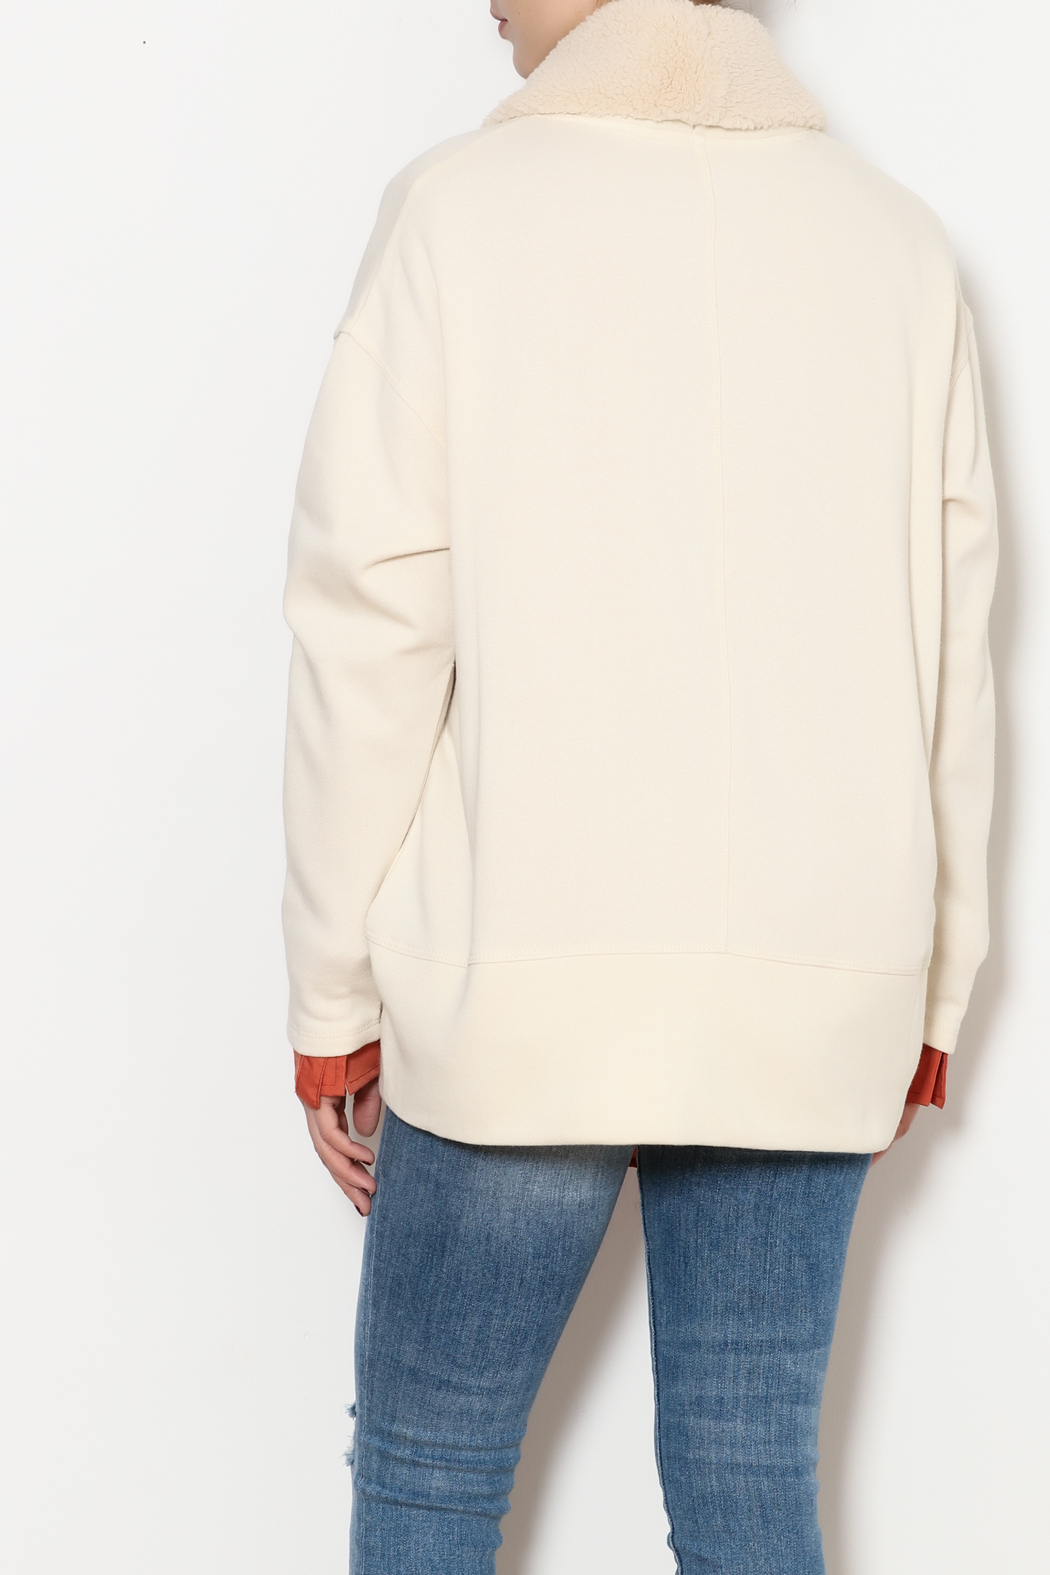 z supply Sherpa Cocoon Cardigan - Back Cropped Image